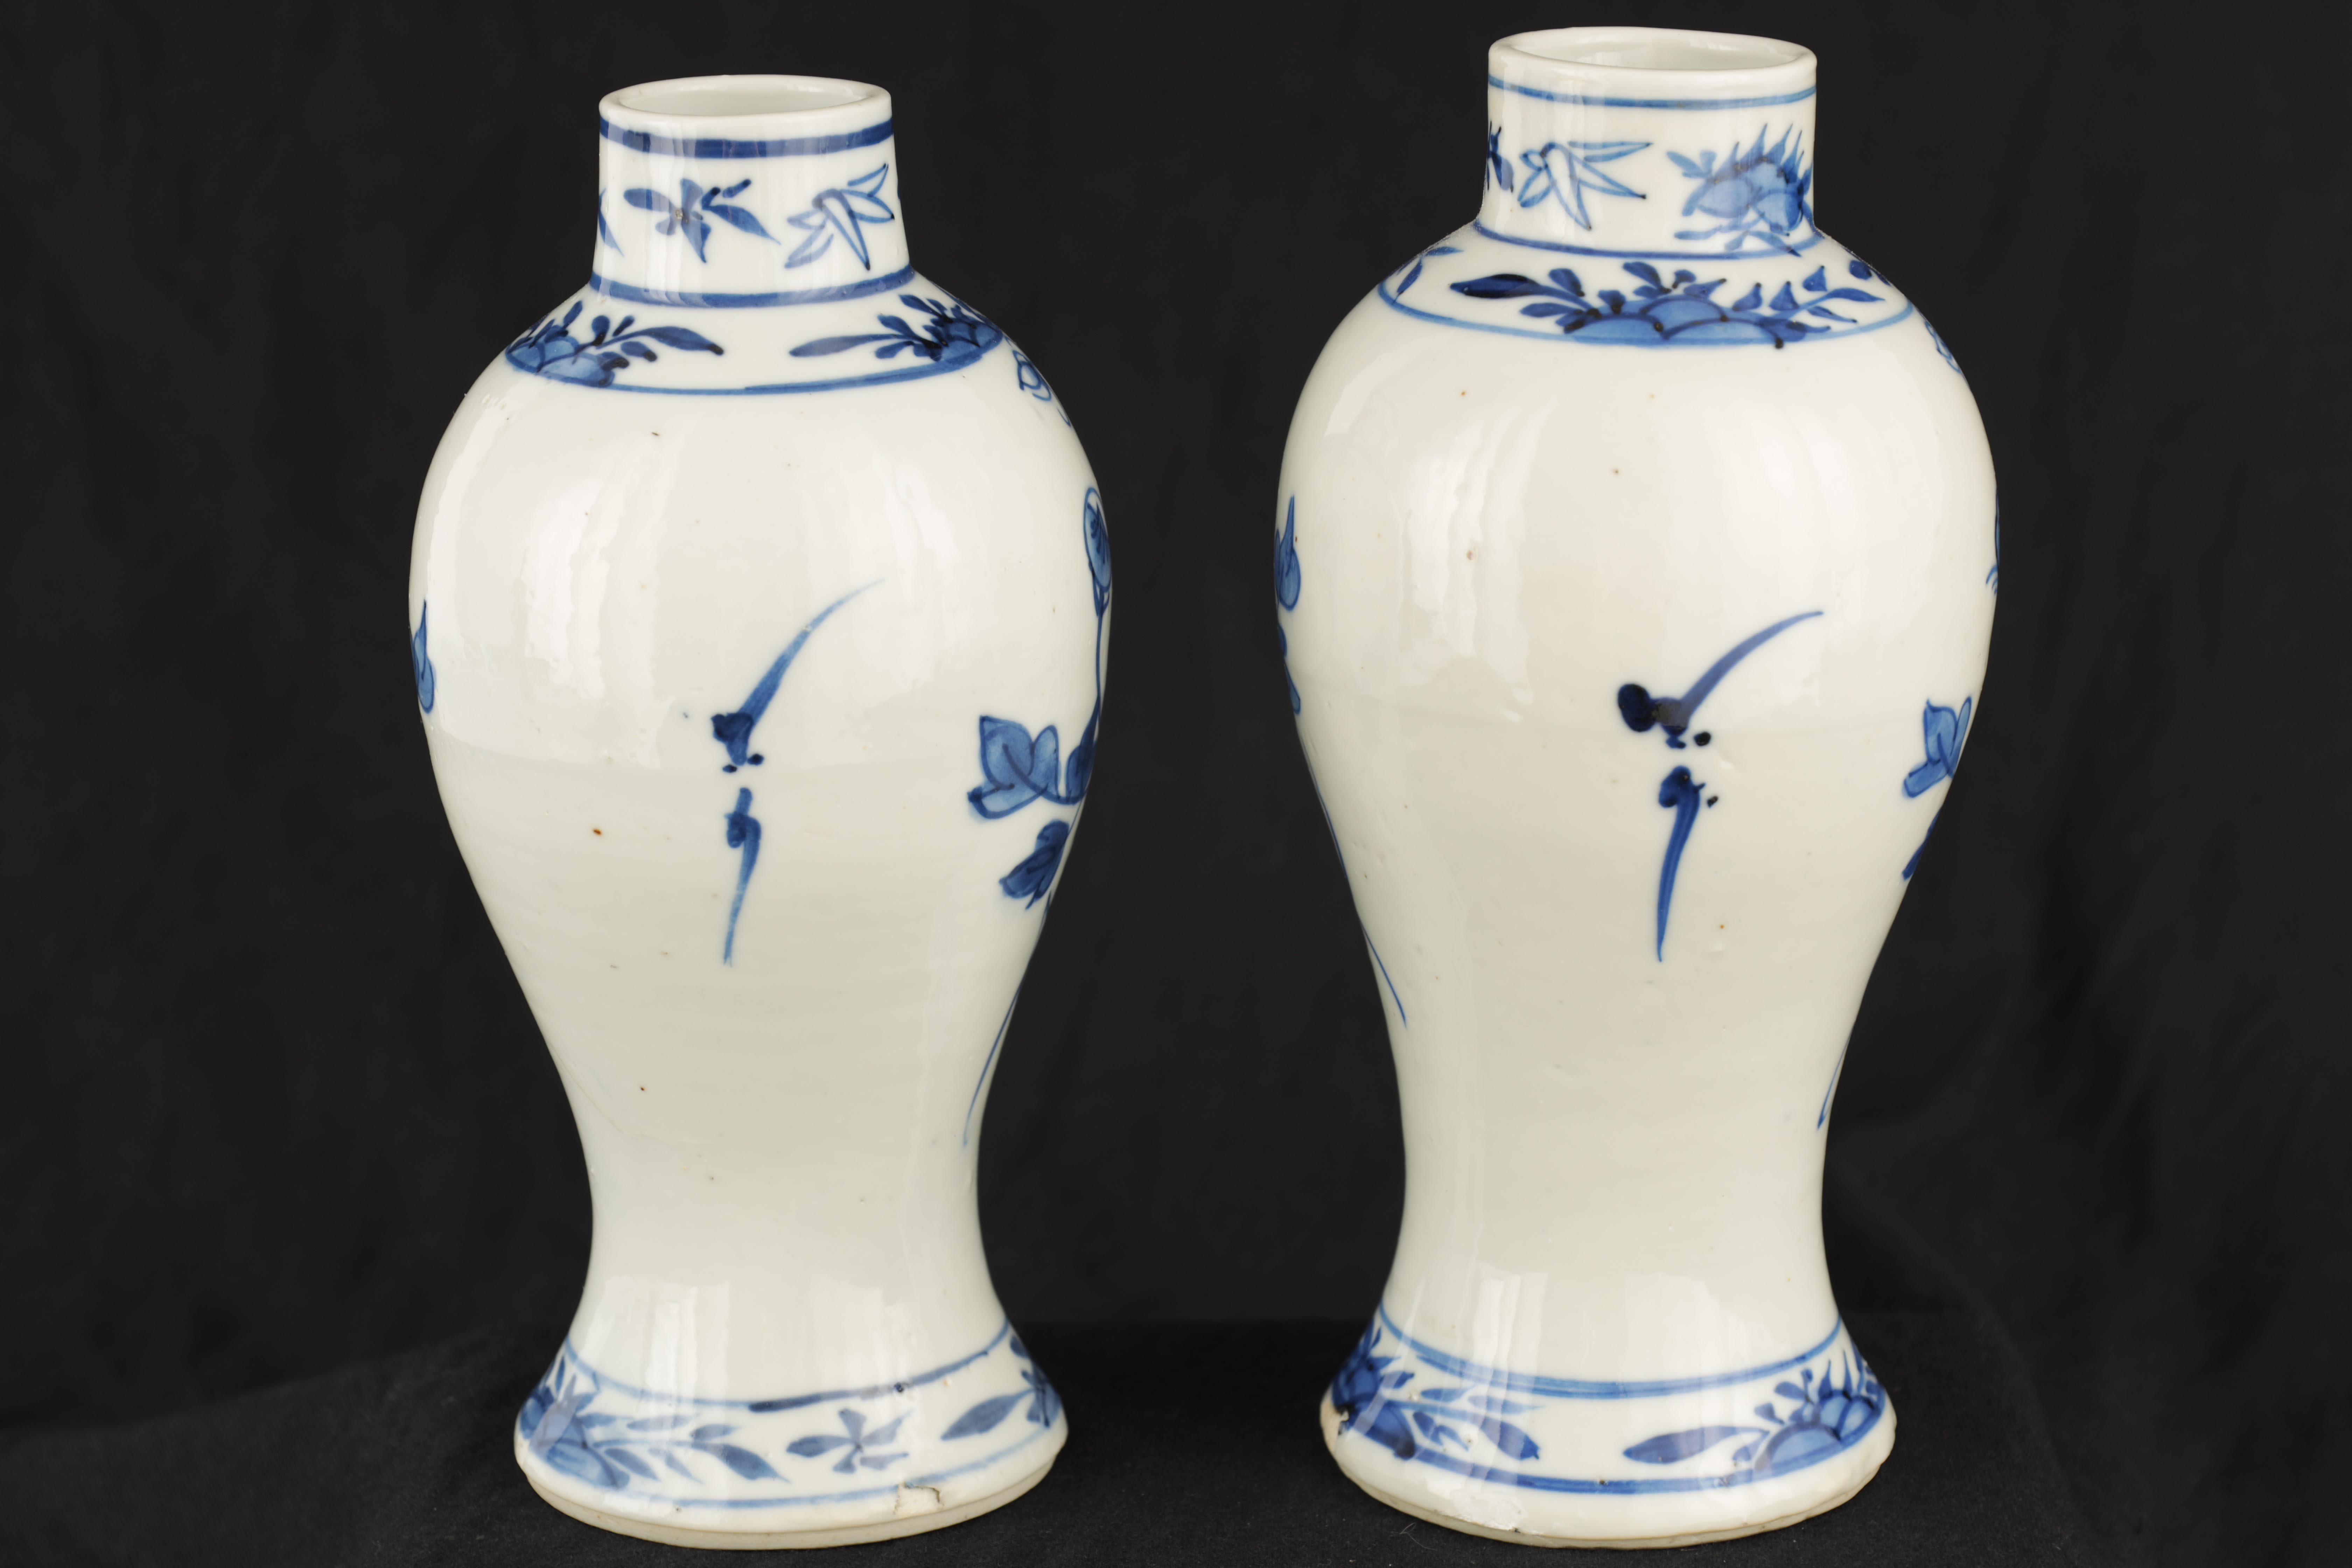 A PAIR OF 19TH CENTURY CHINESE BLUE AND WHITE VASES decorated with blossoming trees and birds 17cm - Image 7 of 9